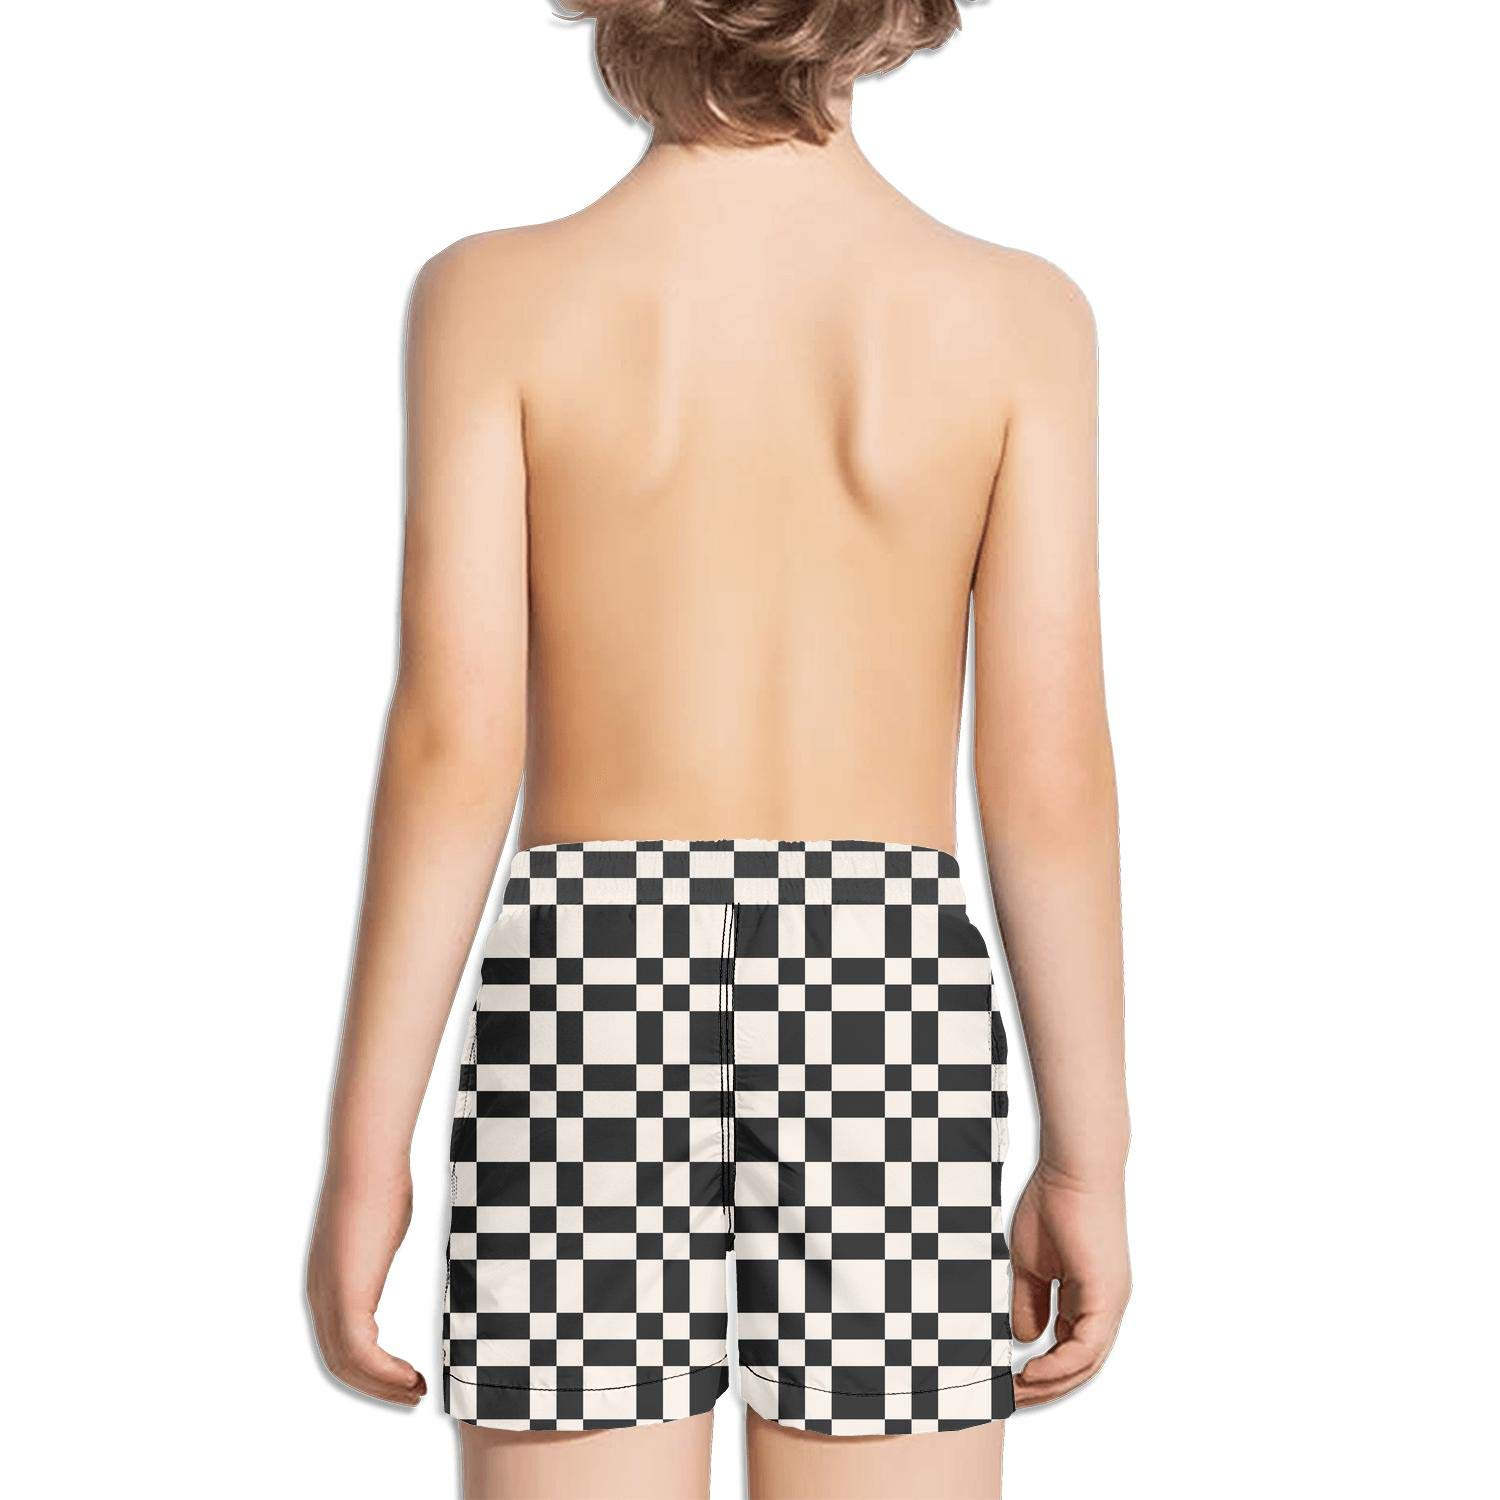 Checkerboard Abstract Monochrome Chequered Surfing Fully Lined Side Split Swim Shorts